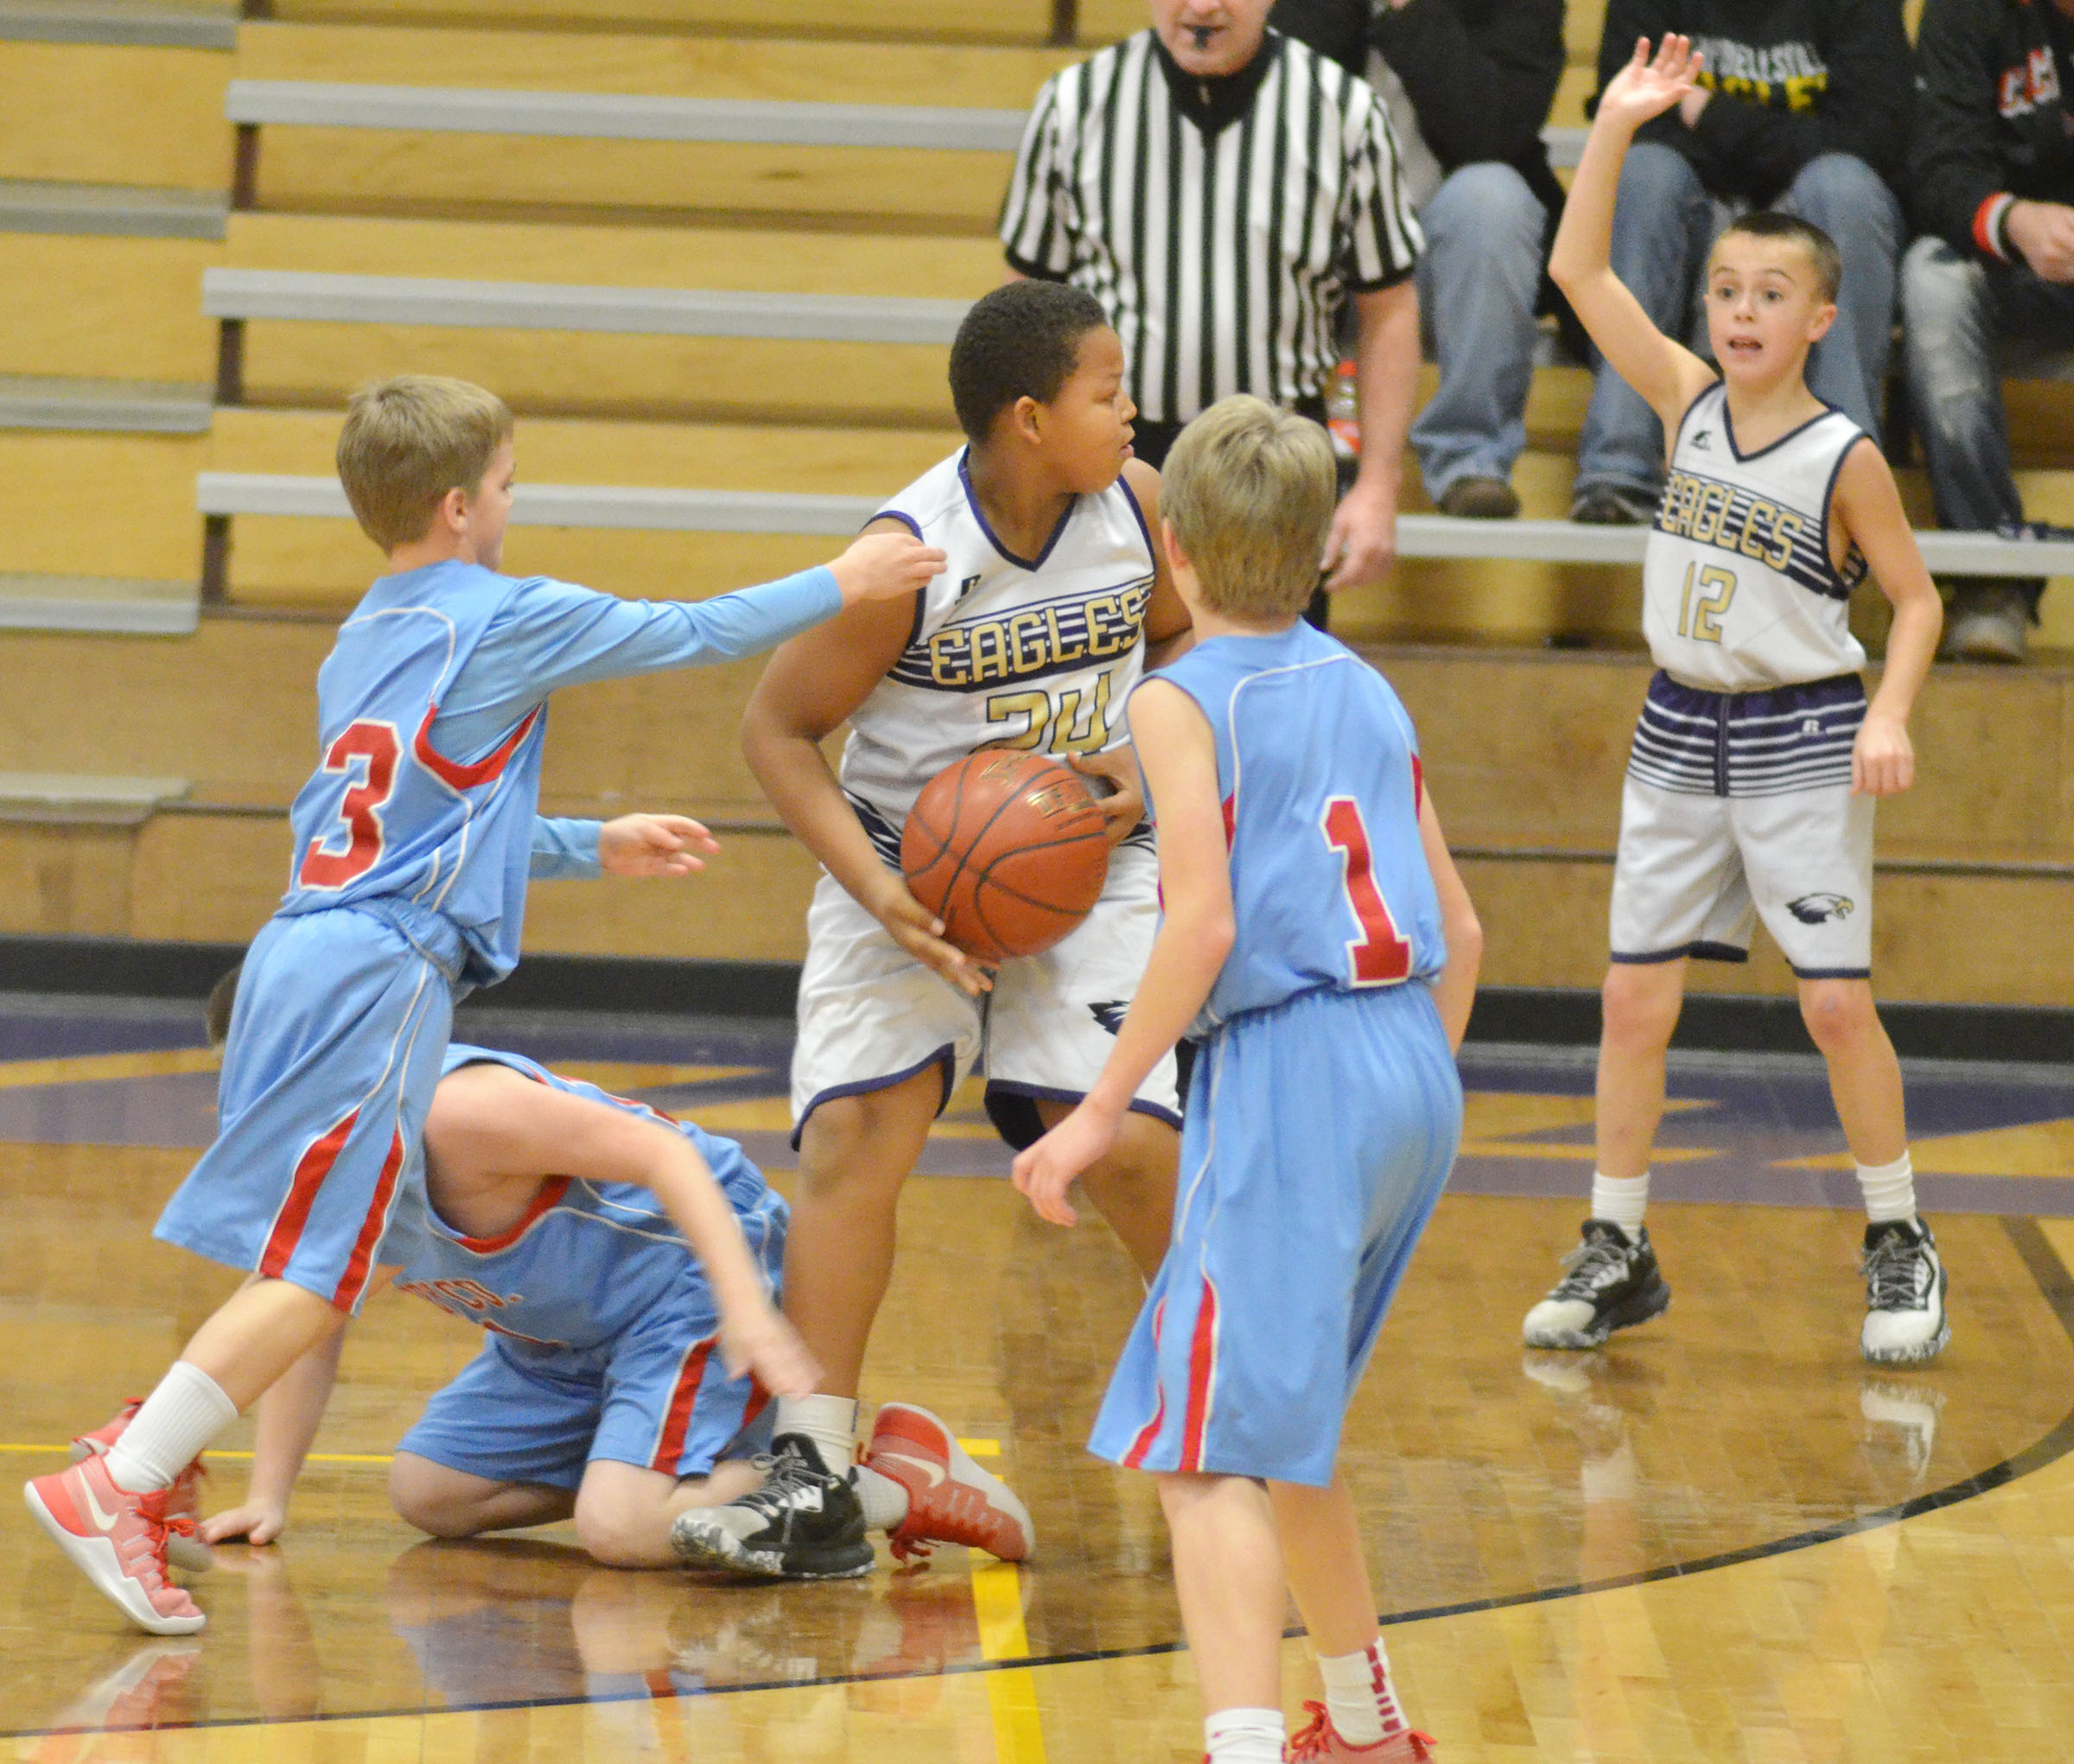 CMS sixth-grader Chase Hord calls for the ball from classmate Keondre Weathers.